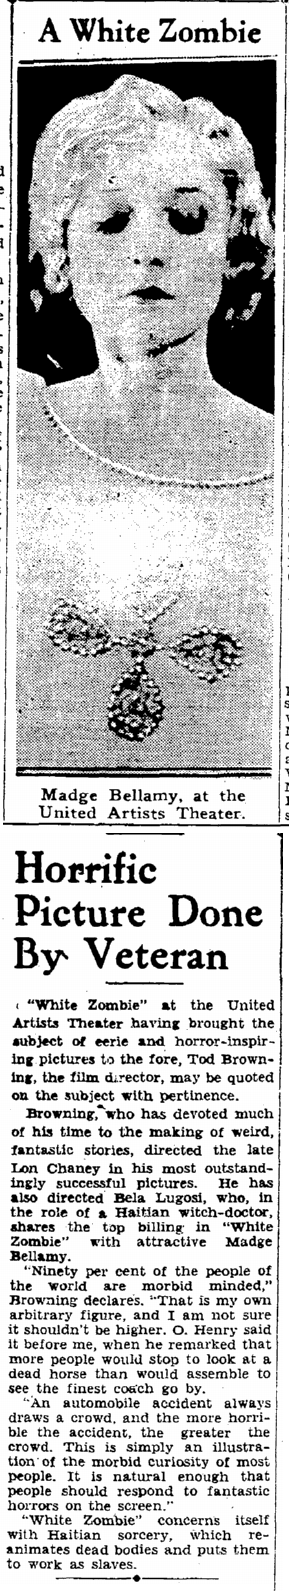 White Zombie, San Francisco Daily Chronicle, November 30, 1932